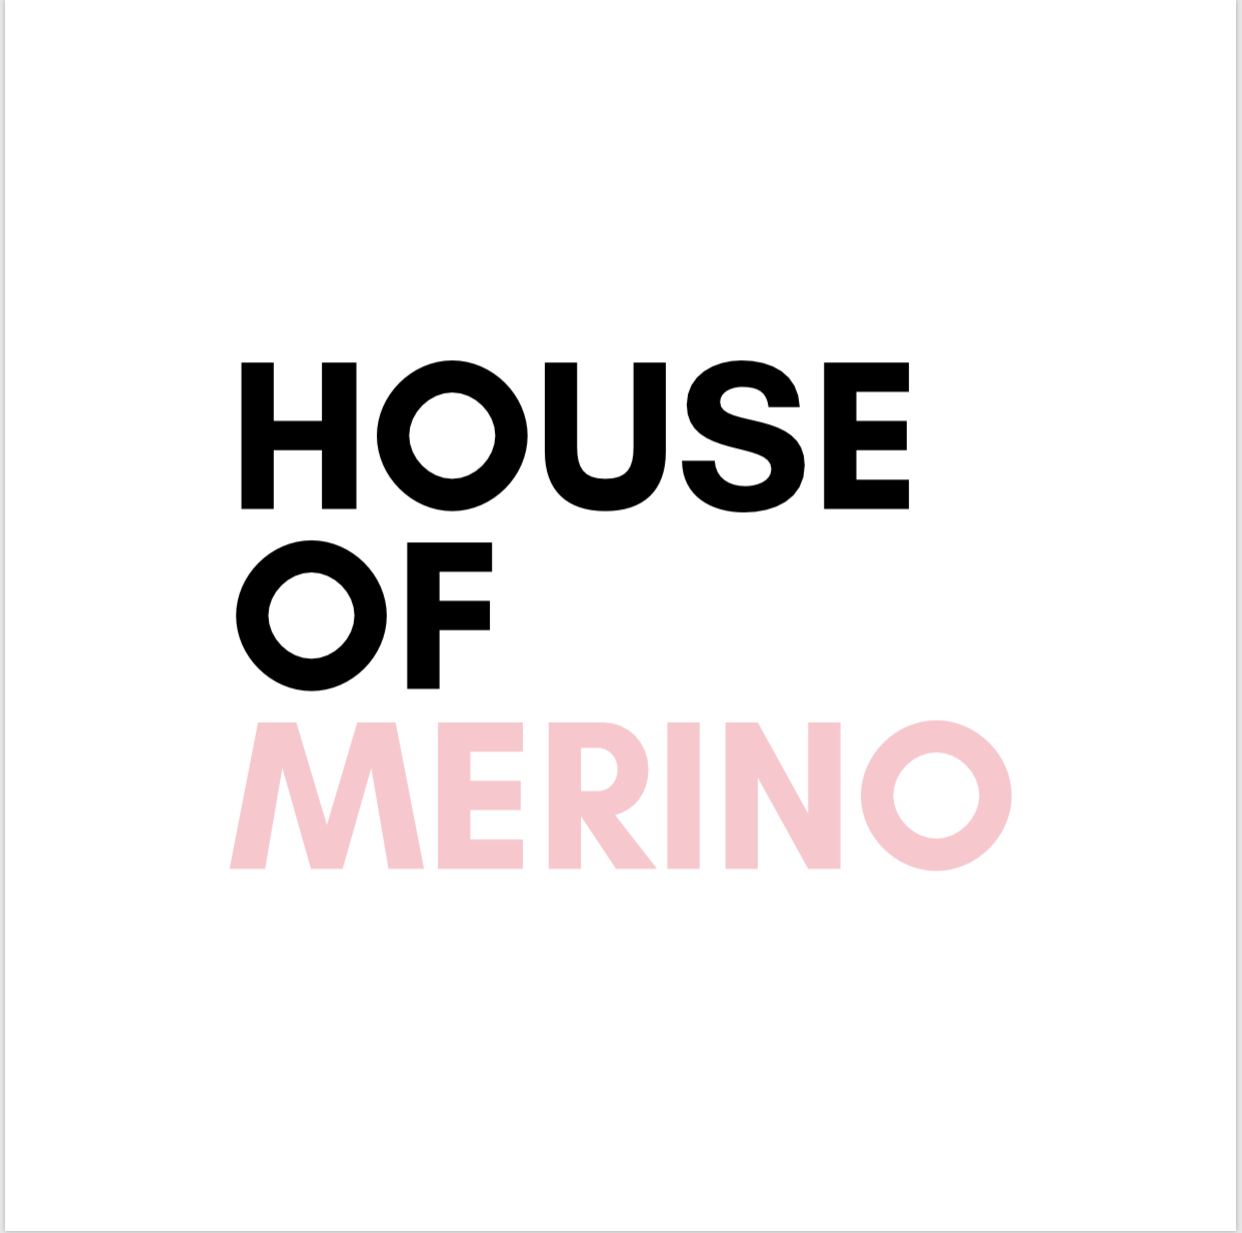 House of Merino